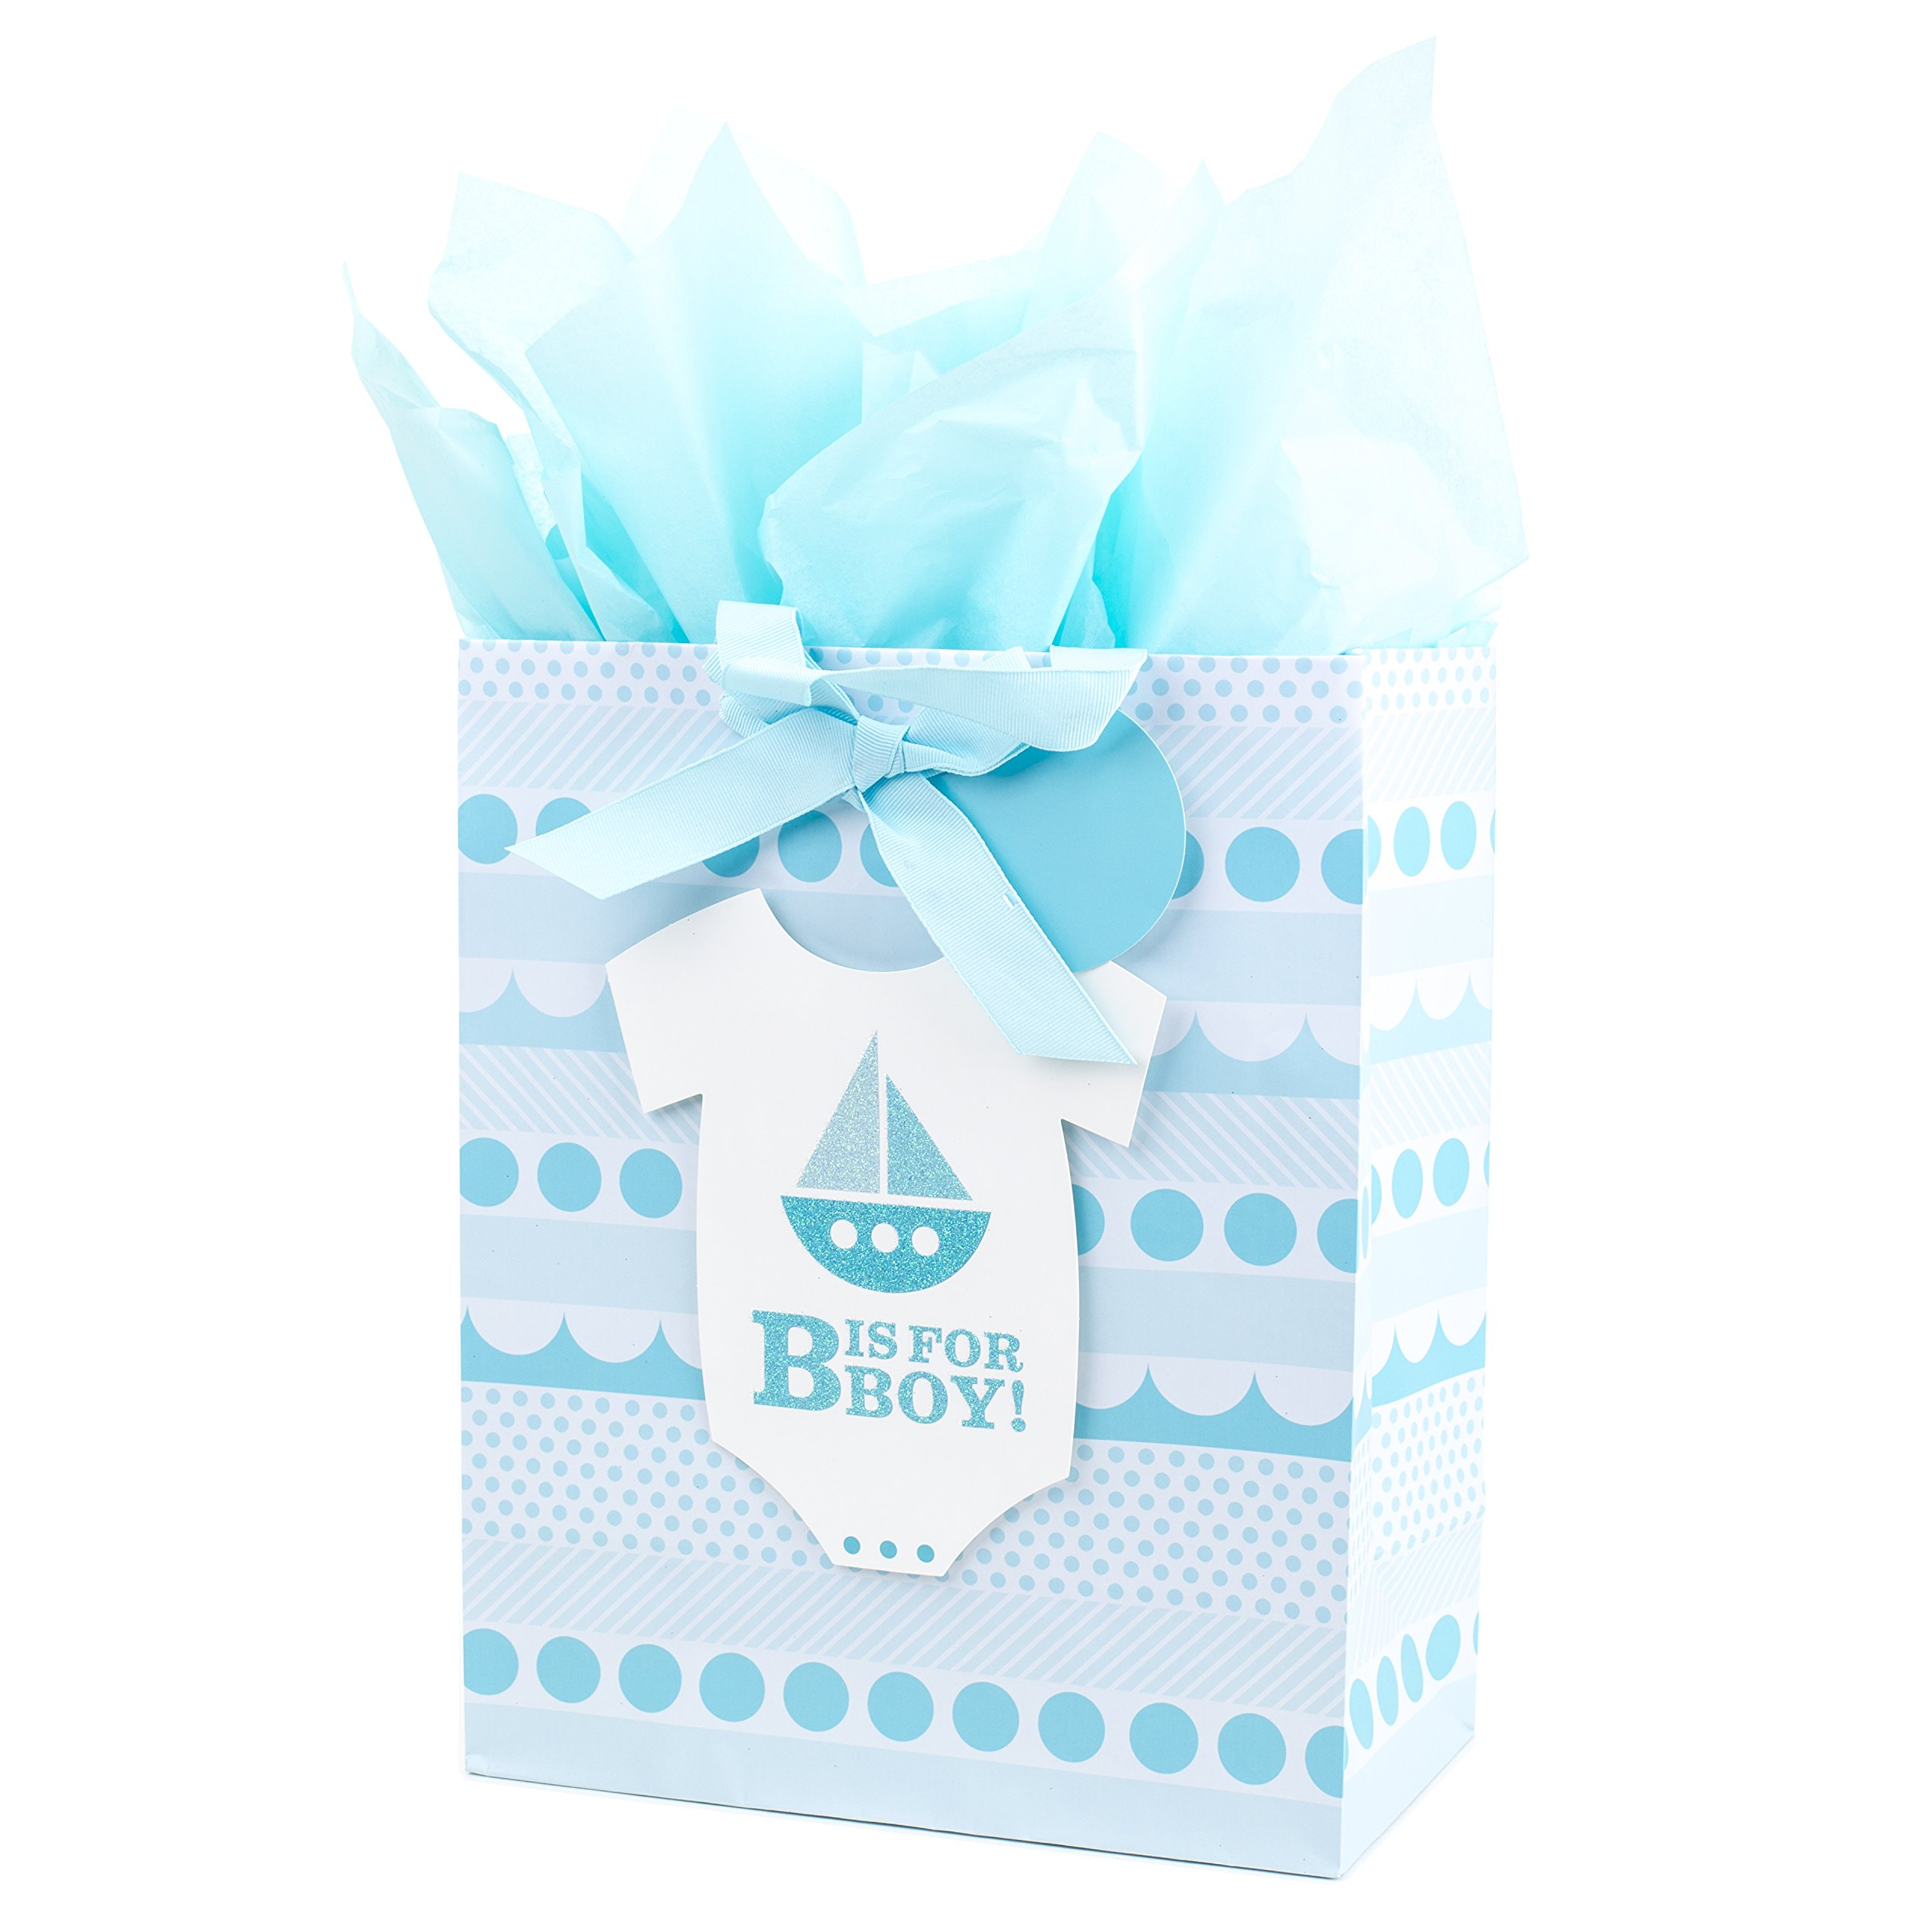 """Hallmark 13"""" Large Gift Bag with Tissue Paper for Baby Showers, New Moms and More (B is for Boy, Blue)"""